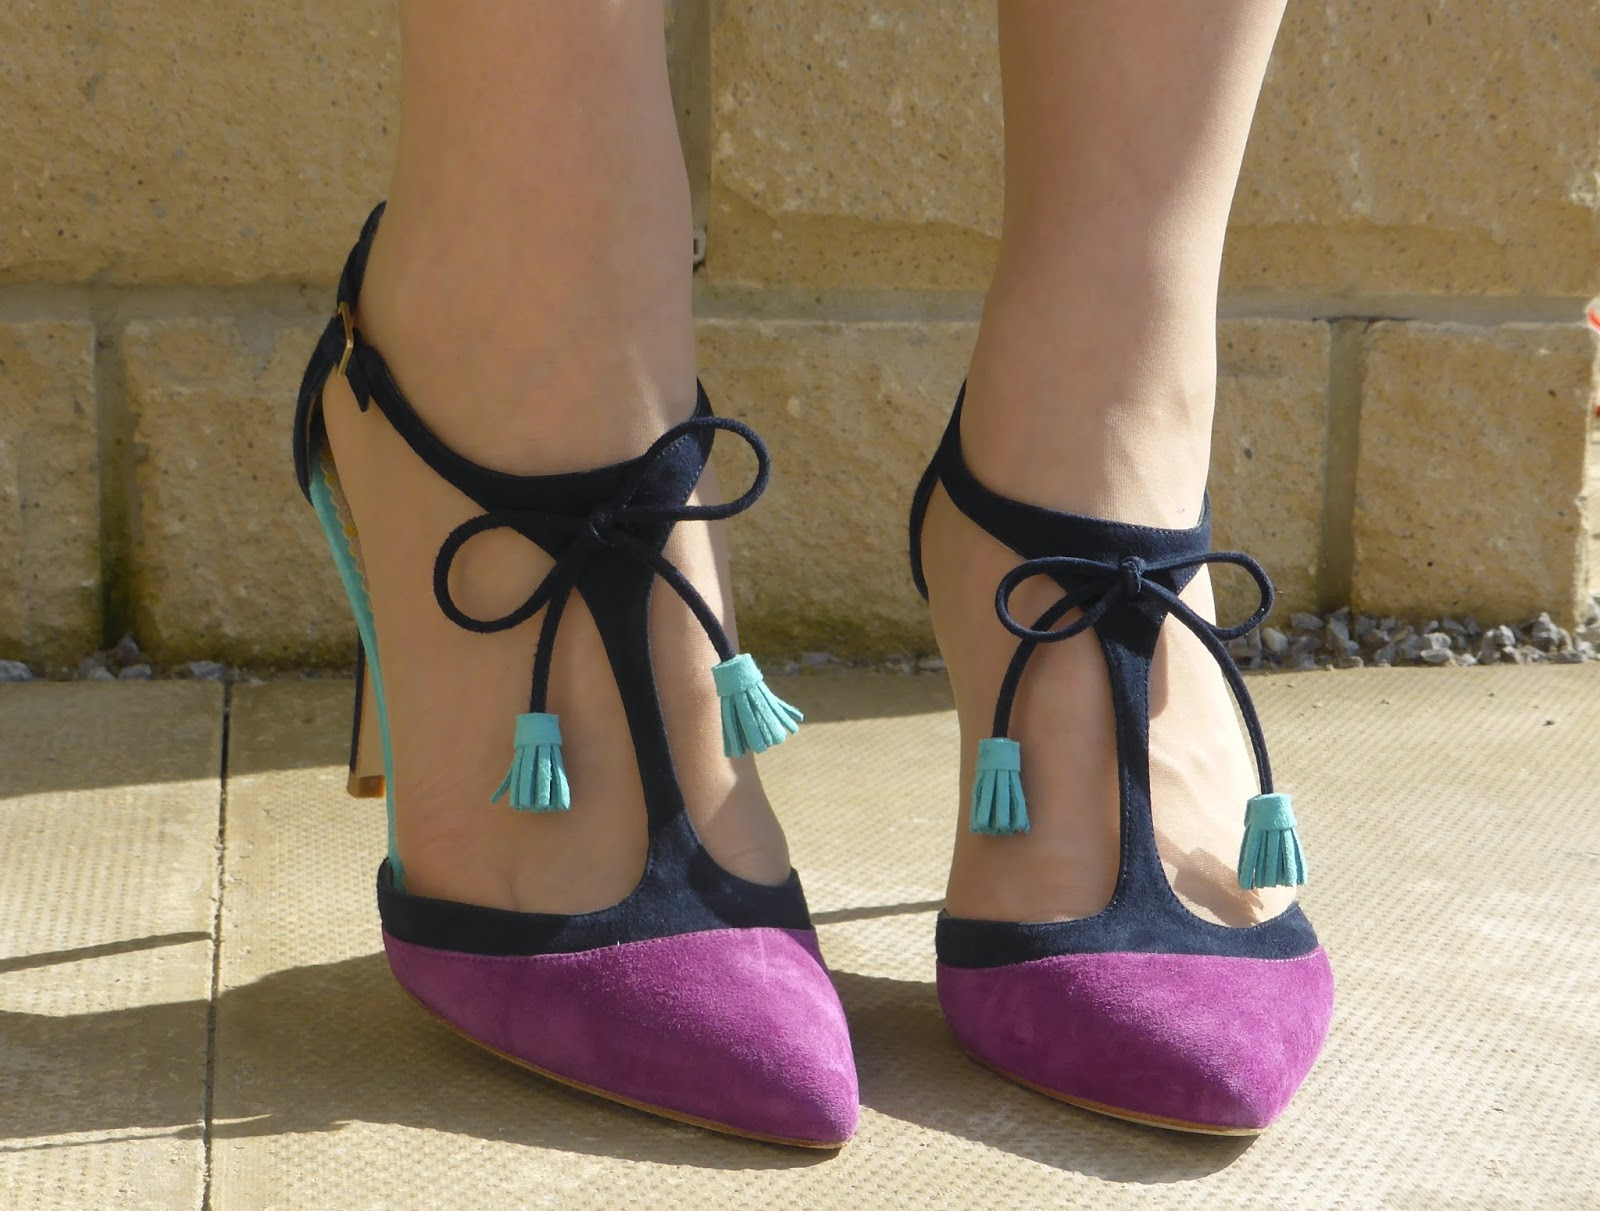 What Lizzy Loves, 40 plus blogger. Boden Alice shoes. Navy, magenta with tassels